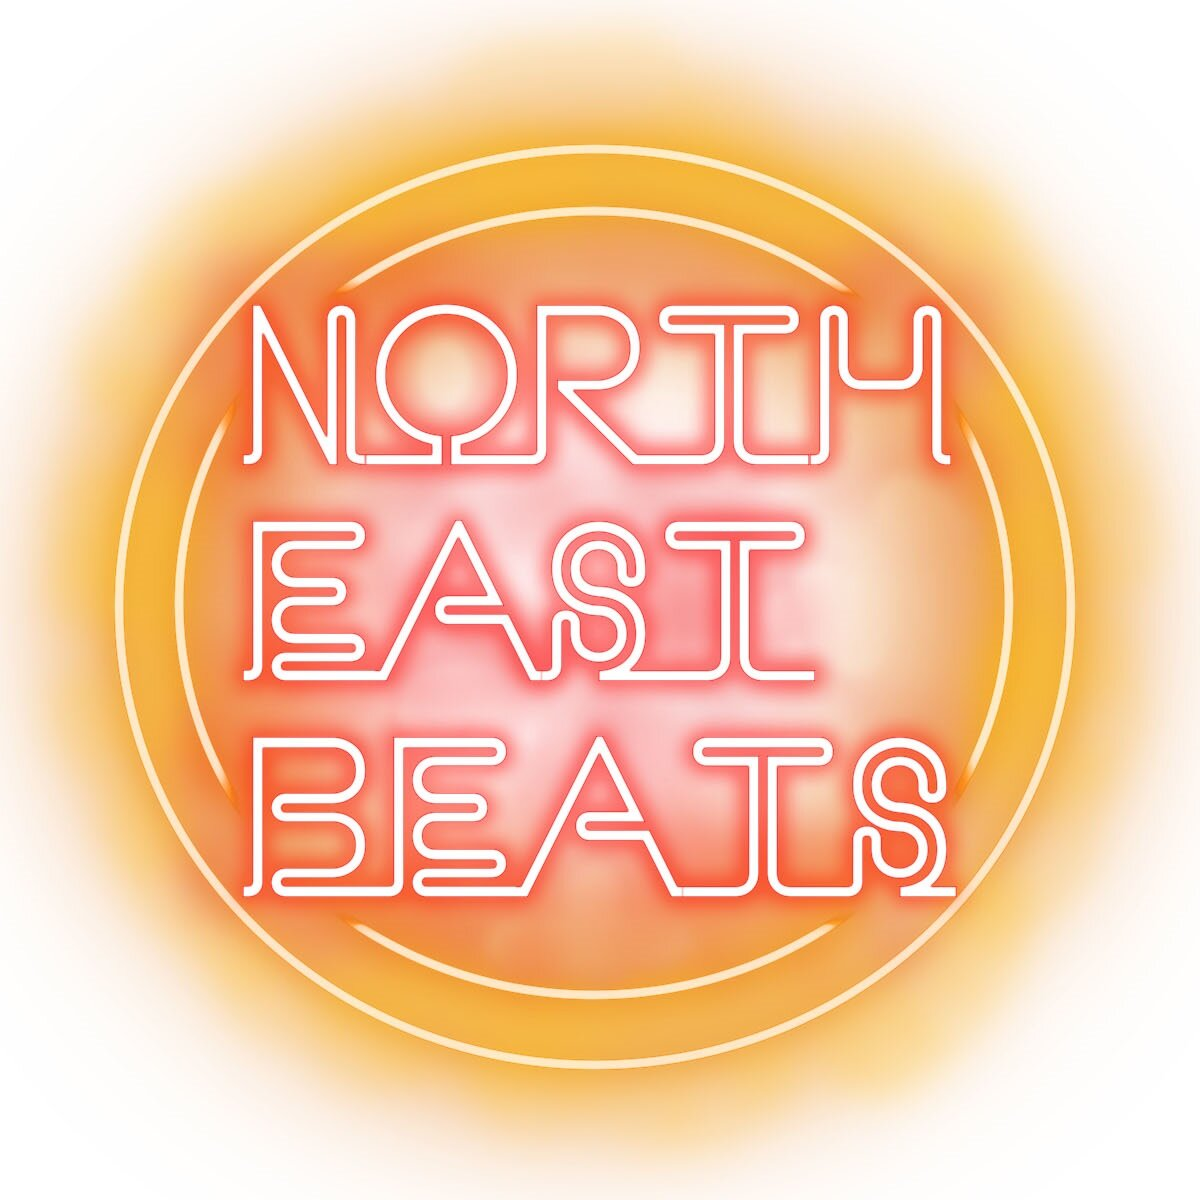 North East Beats